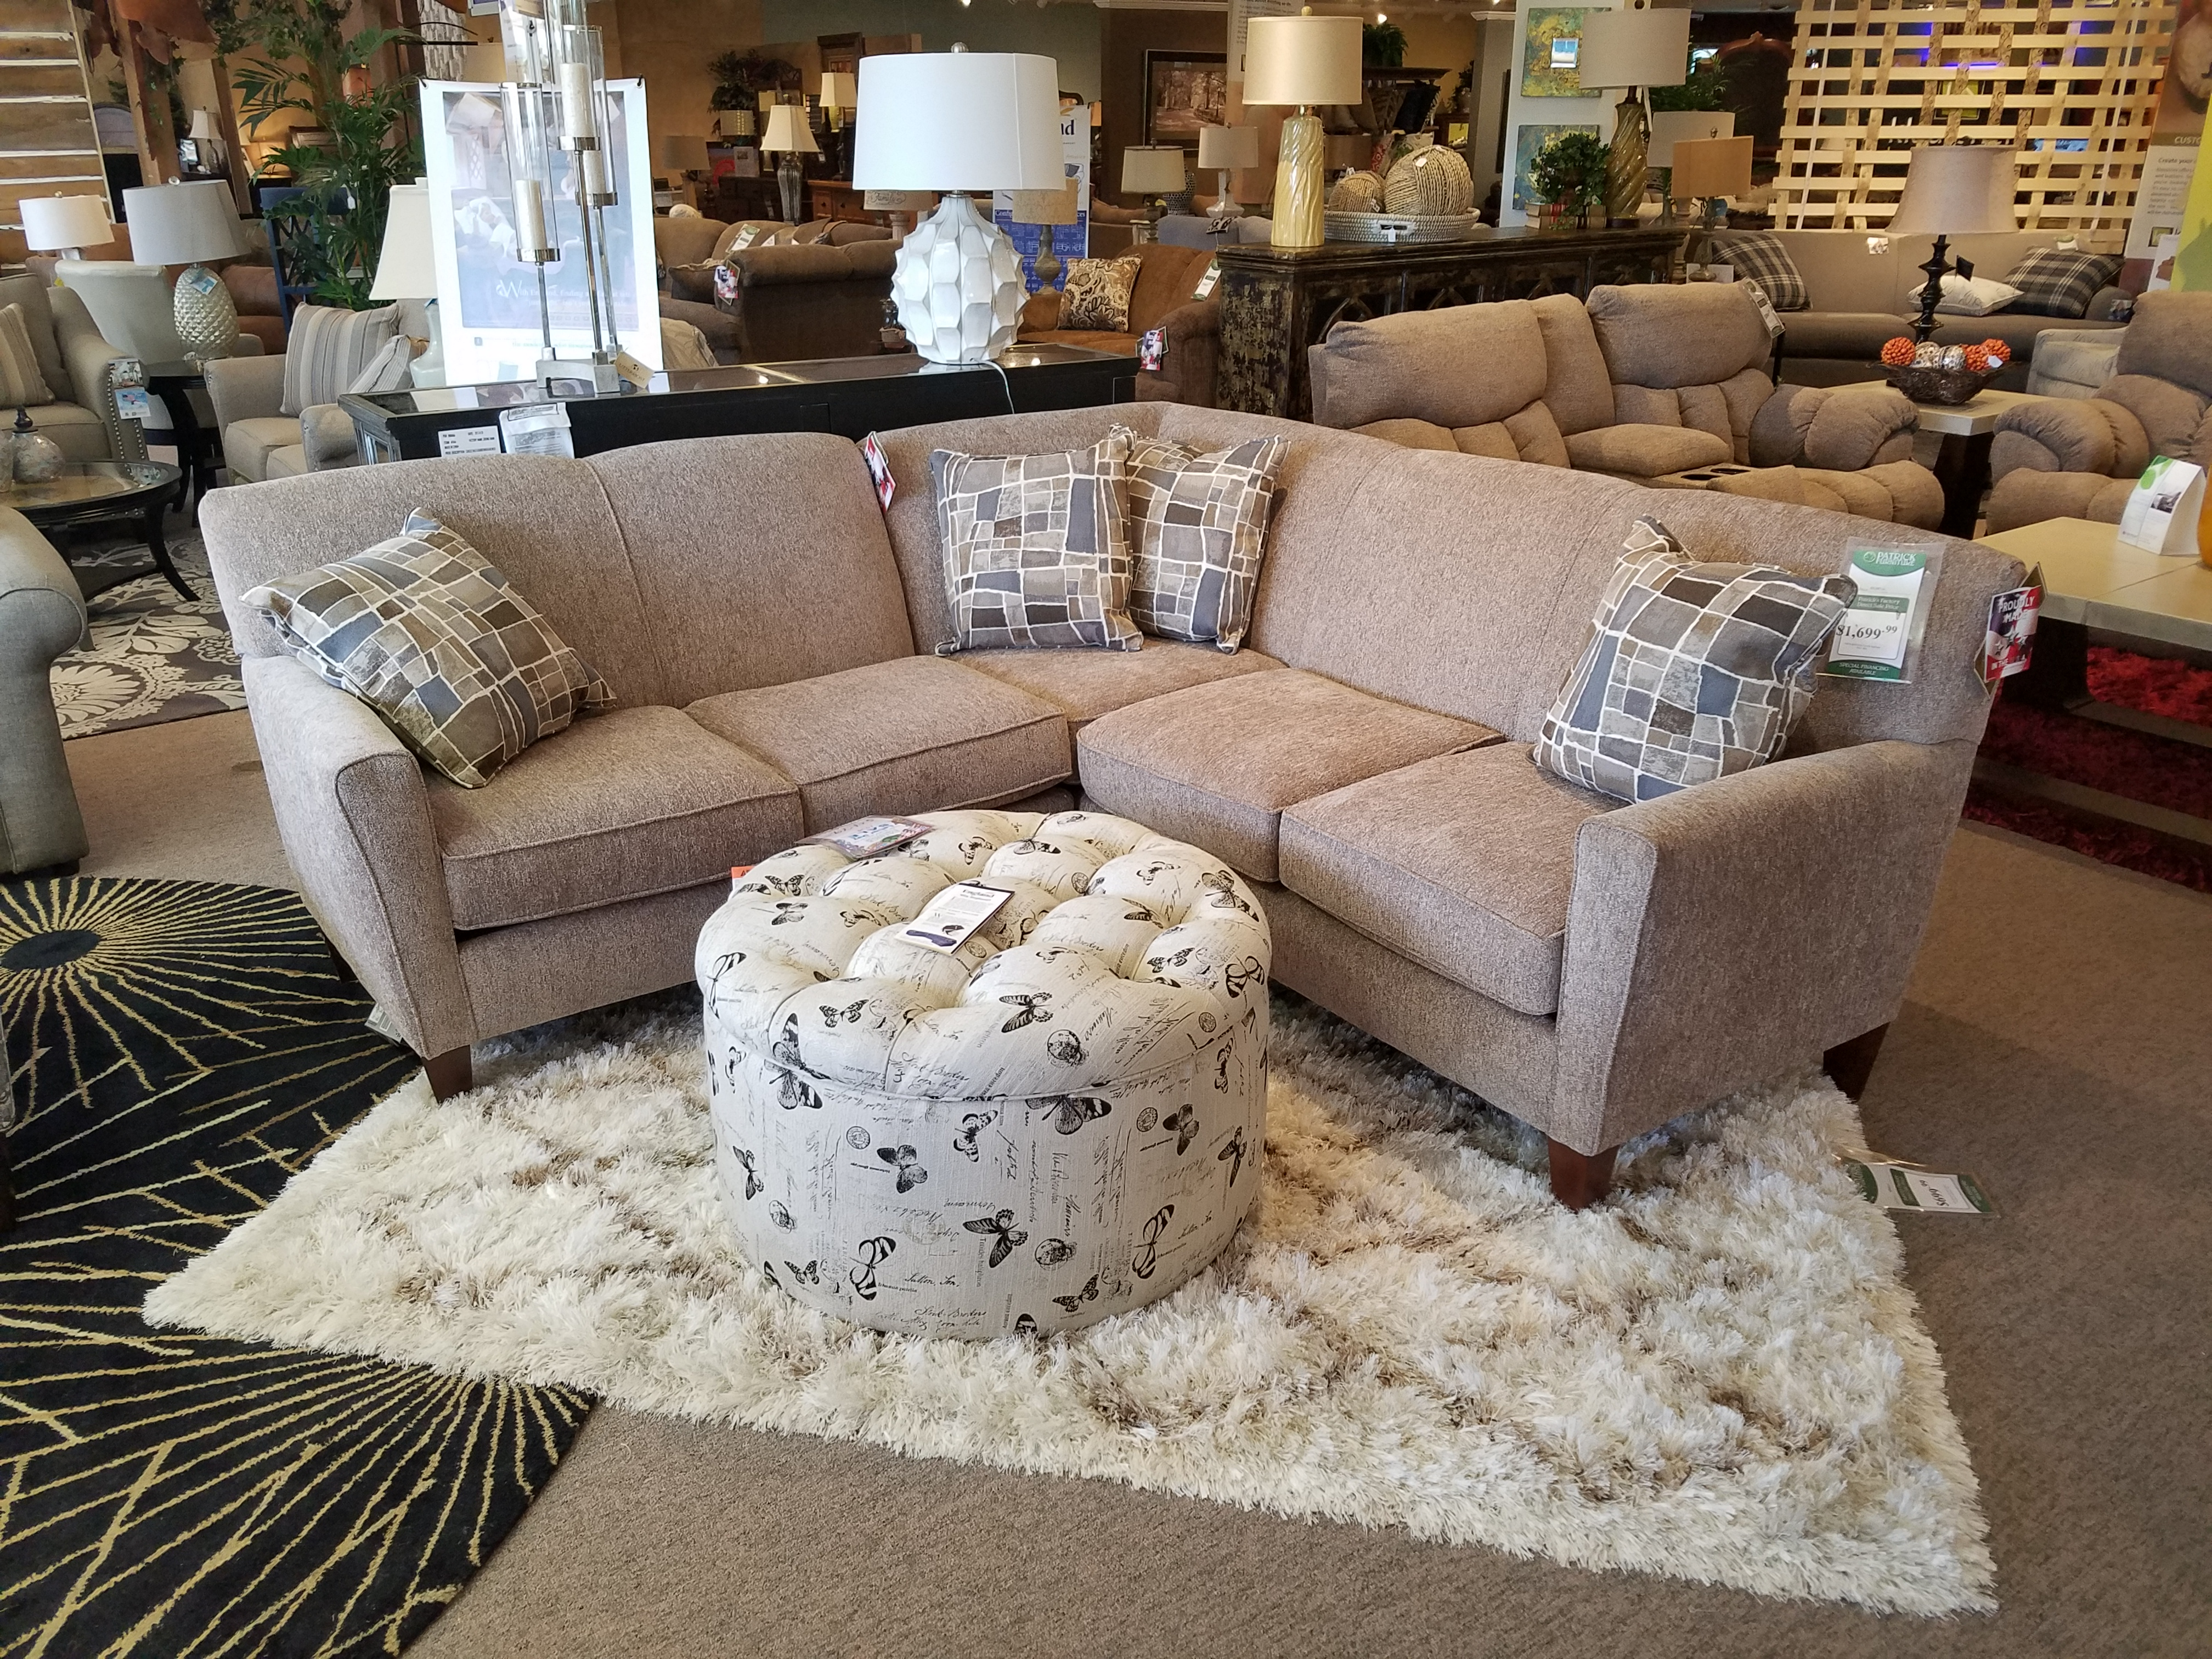 Patrick Furniture Cape Girardeau Missouri Mo